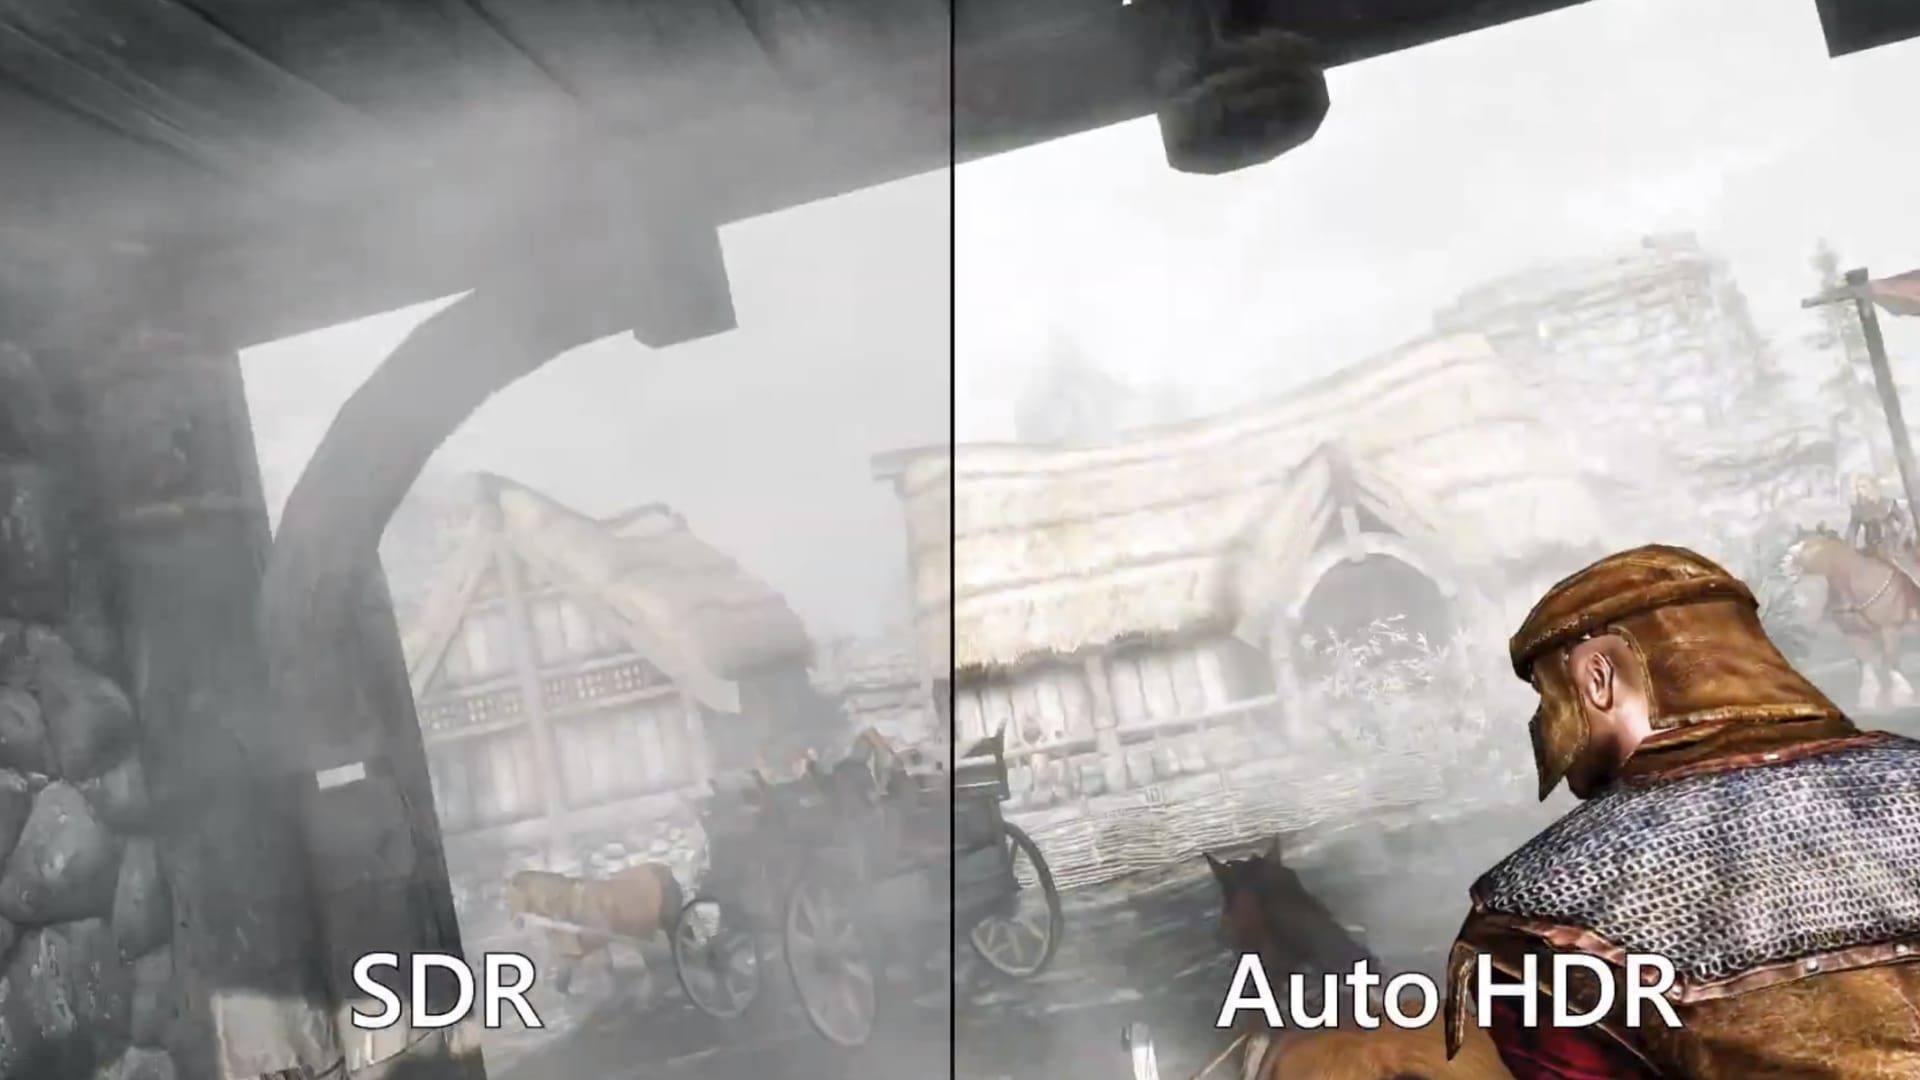 Gaming with auto HDR